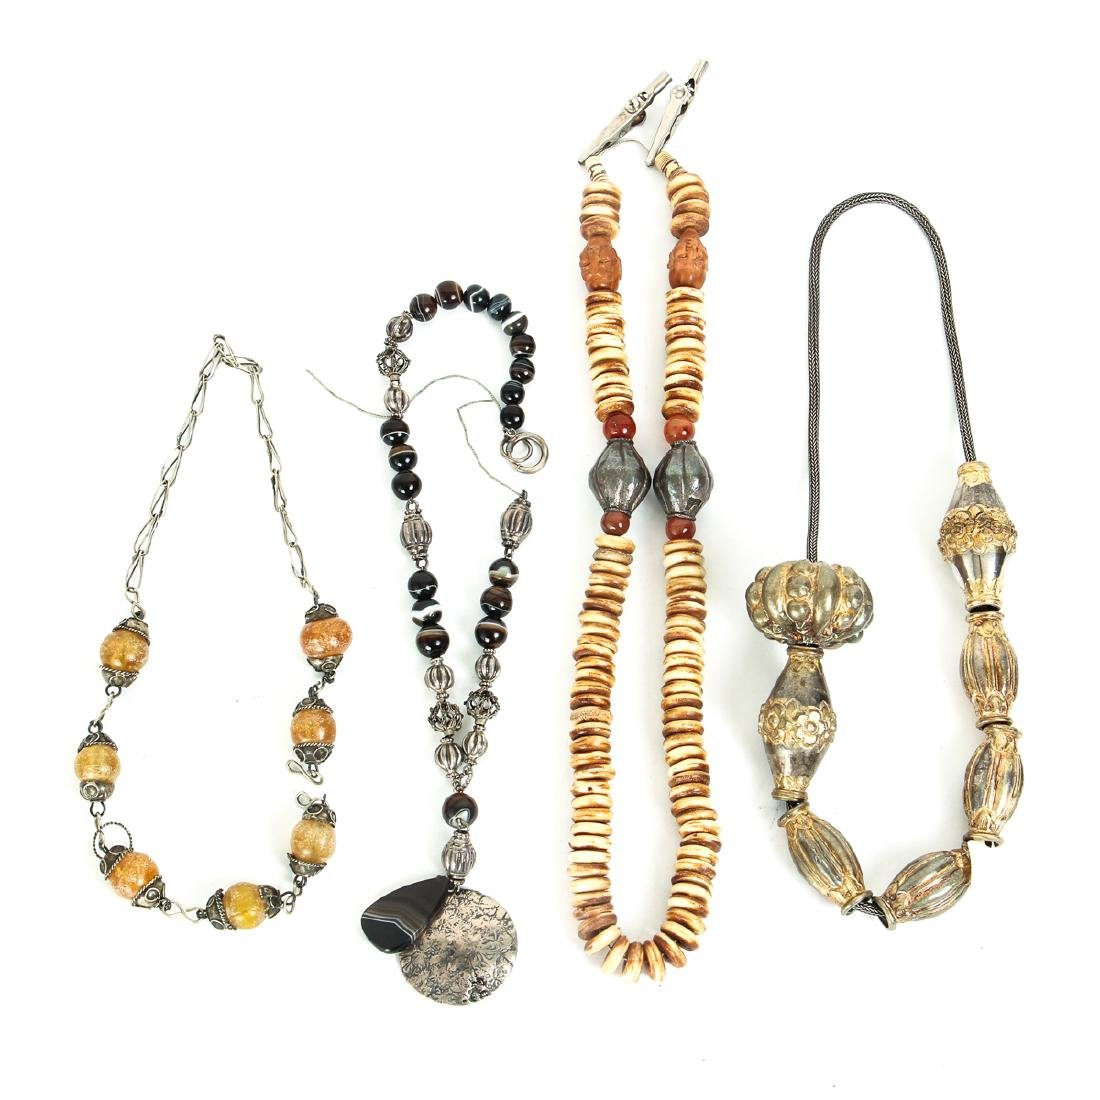 Group of Asian Ethnographic and Other Jewelry - 2